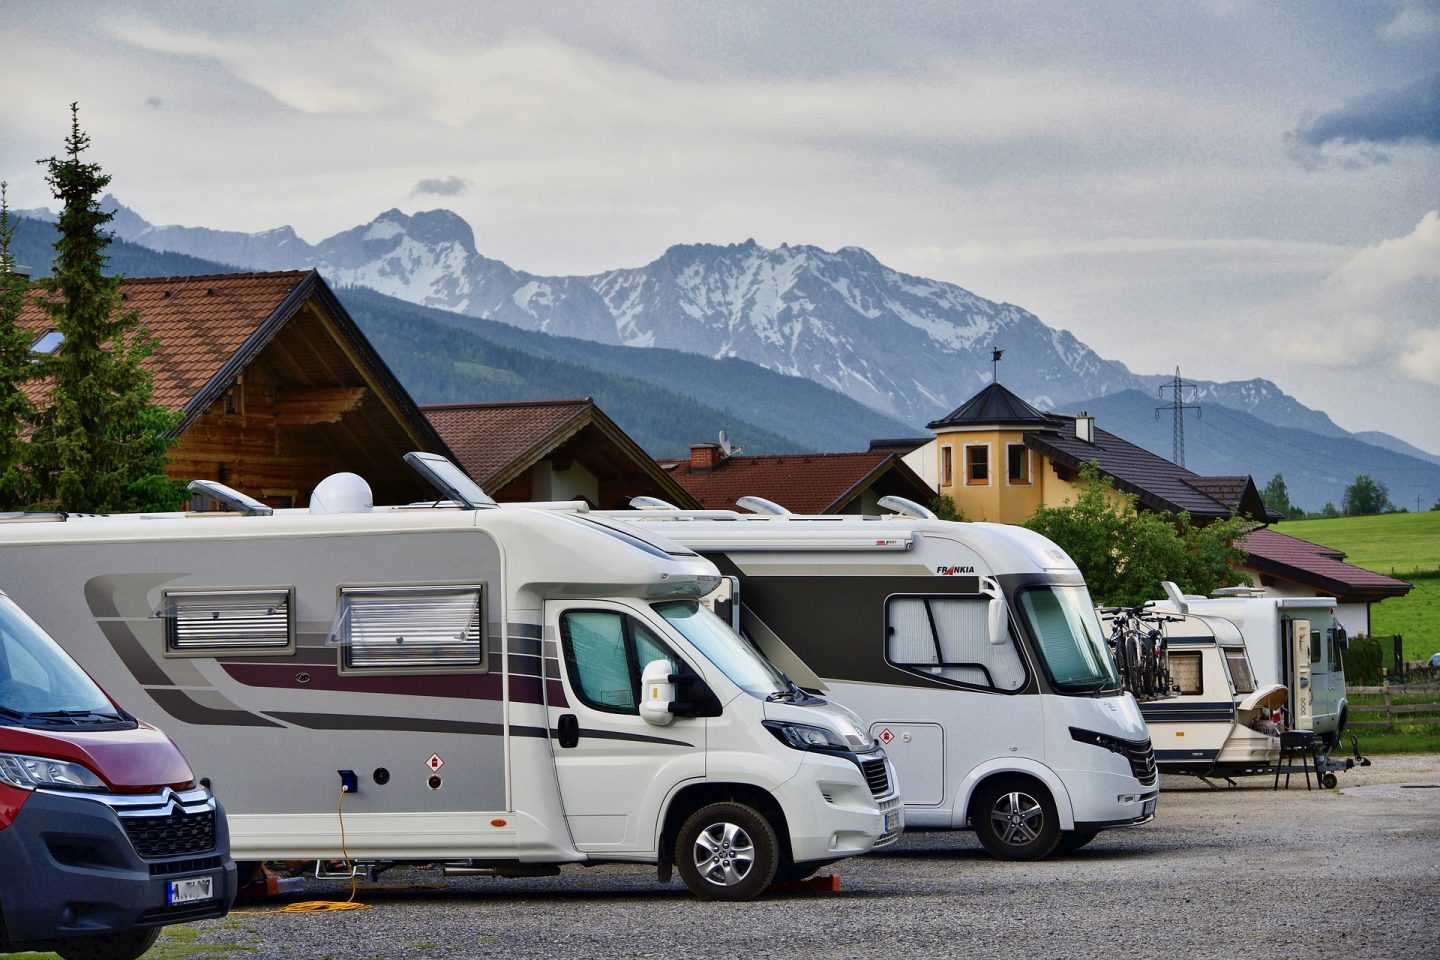 HOW TO CHOOSE THE RIGHT RV TO RENT